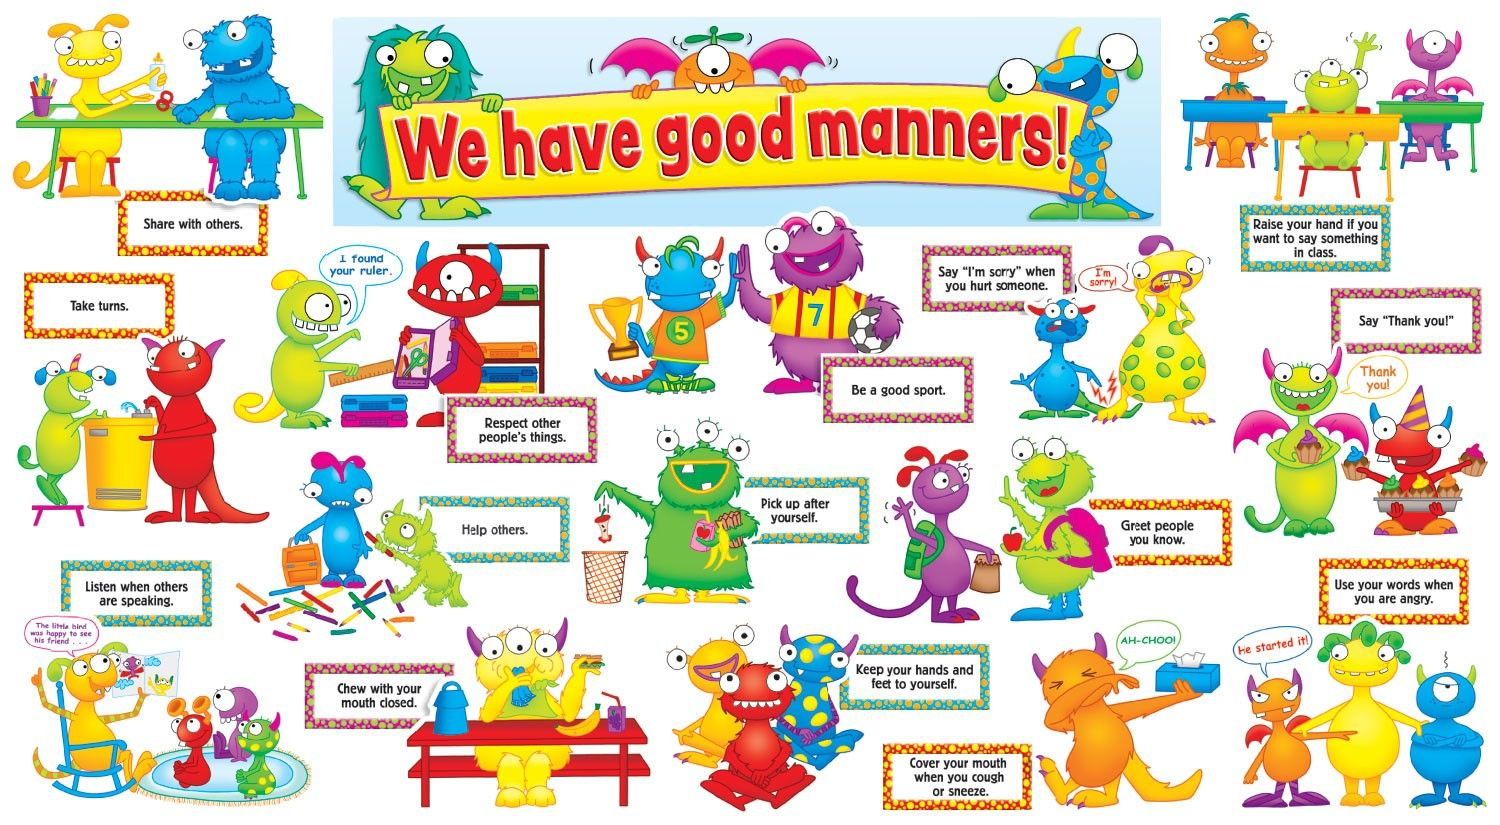 good manners lessons teach good manners for kids preschool perfect for first day of co op